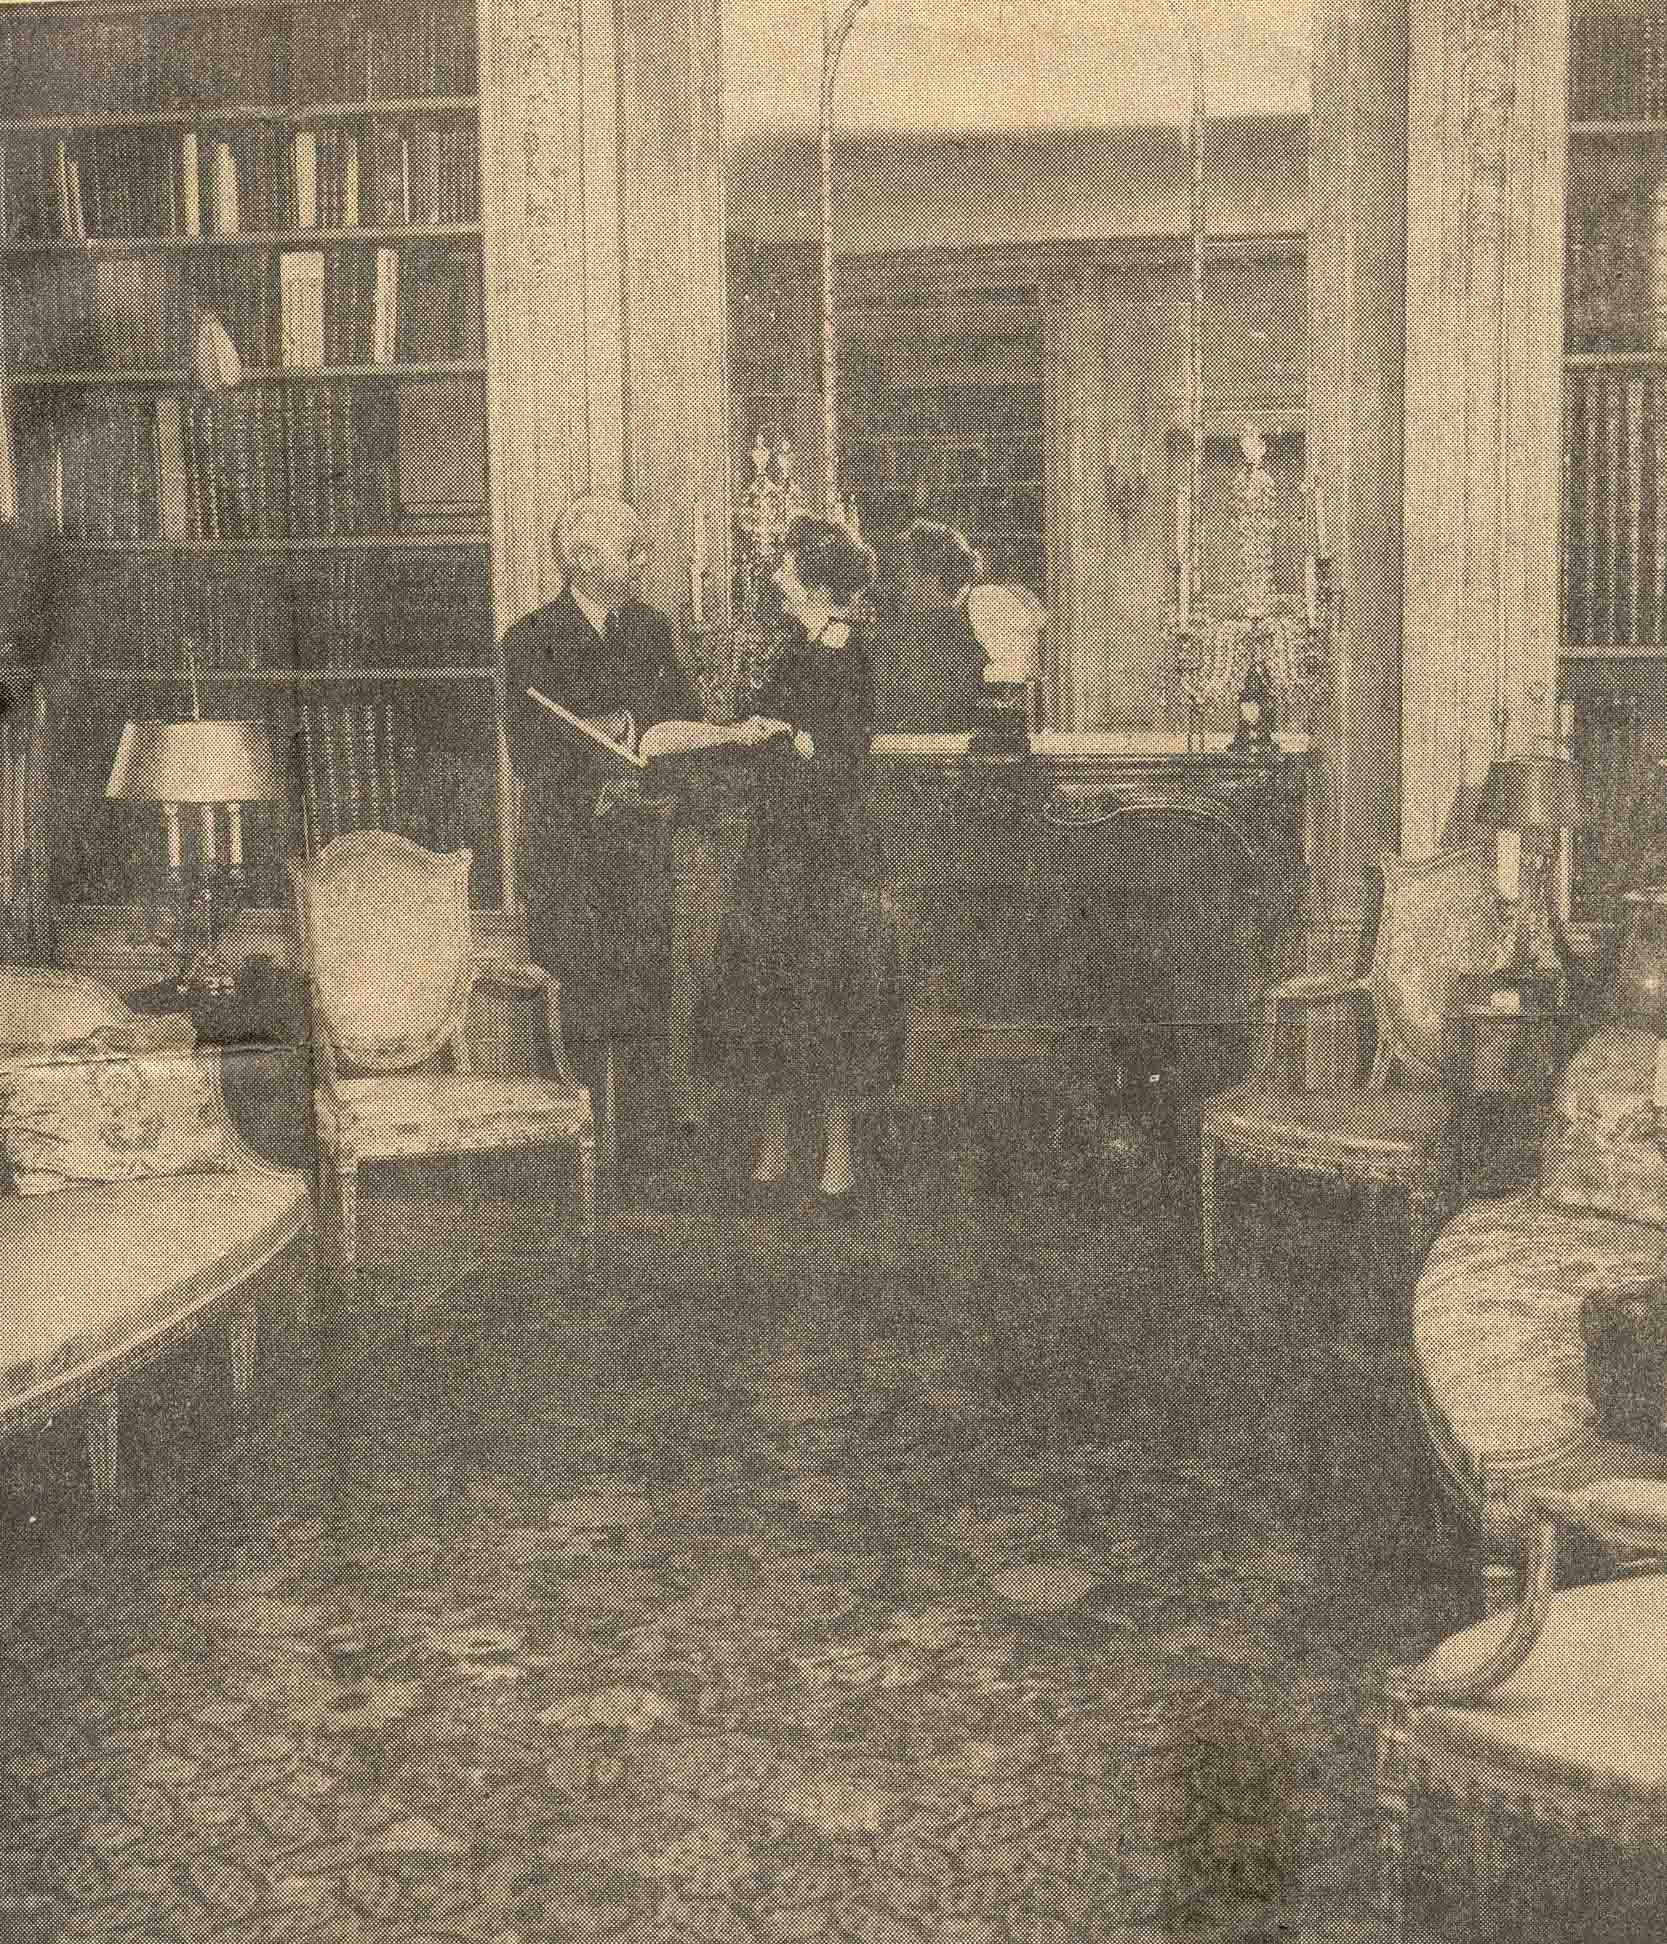 Mildred Robert Woods Bliss in the Dumbarton Oaks Founders Room with the rare book collection, March 2, 1956 (Sunday Star)